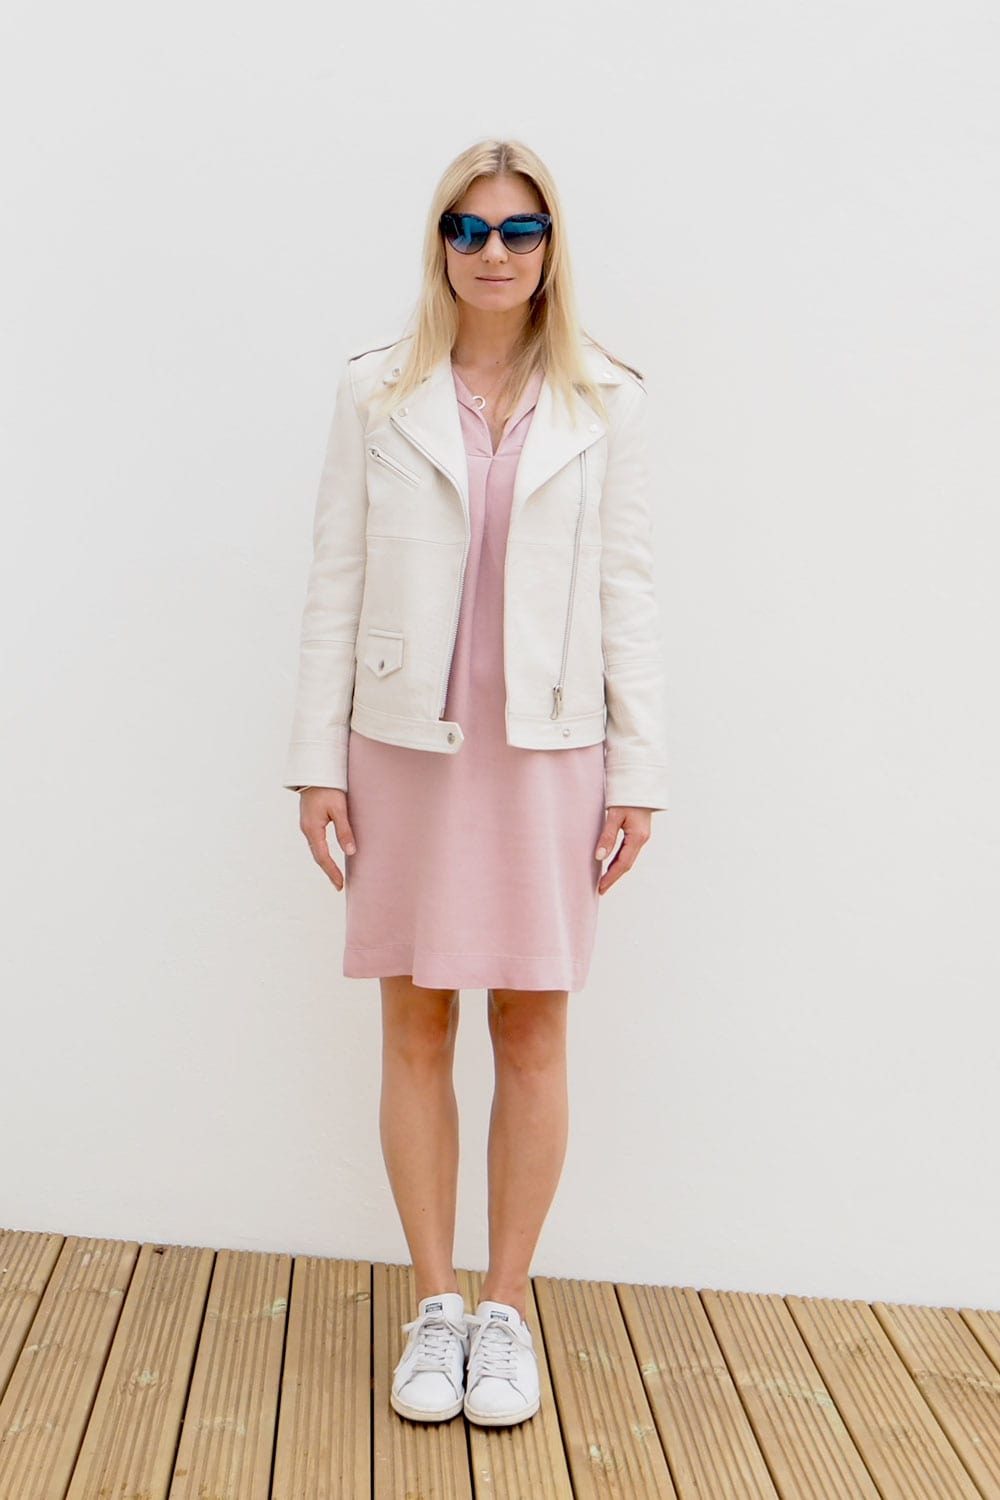 StyleAndMinimalism | It's Personal | Samsoe Tahvo Leather Jacket in Cream, Second Female Tamsin Shirt Dress in Dusky Pink